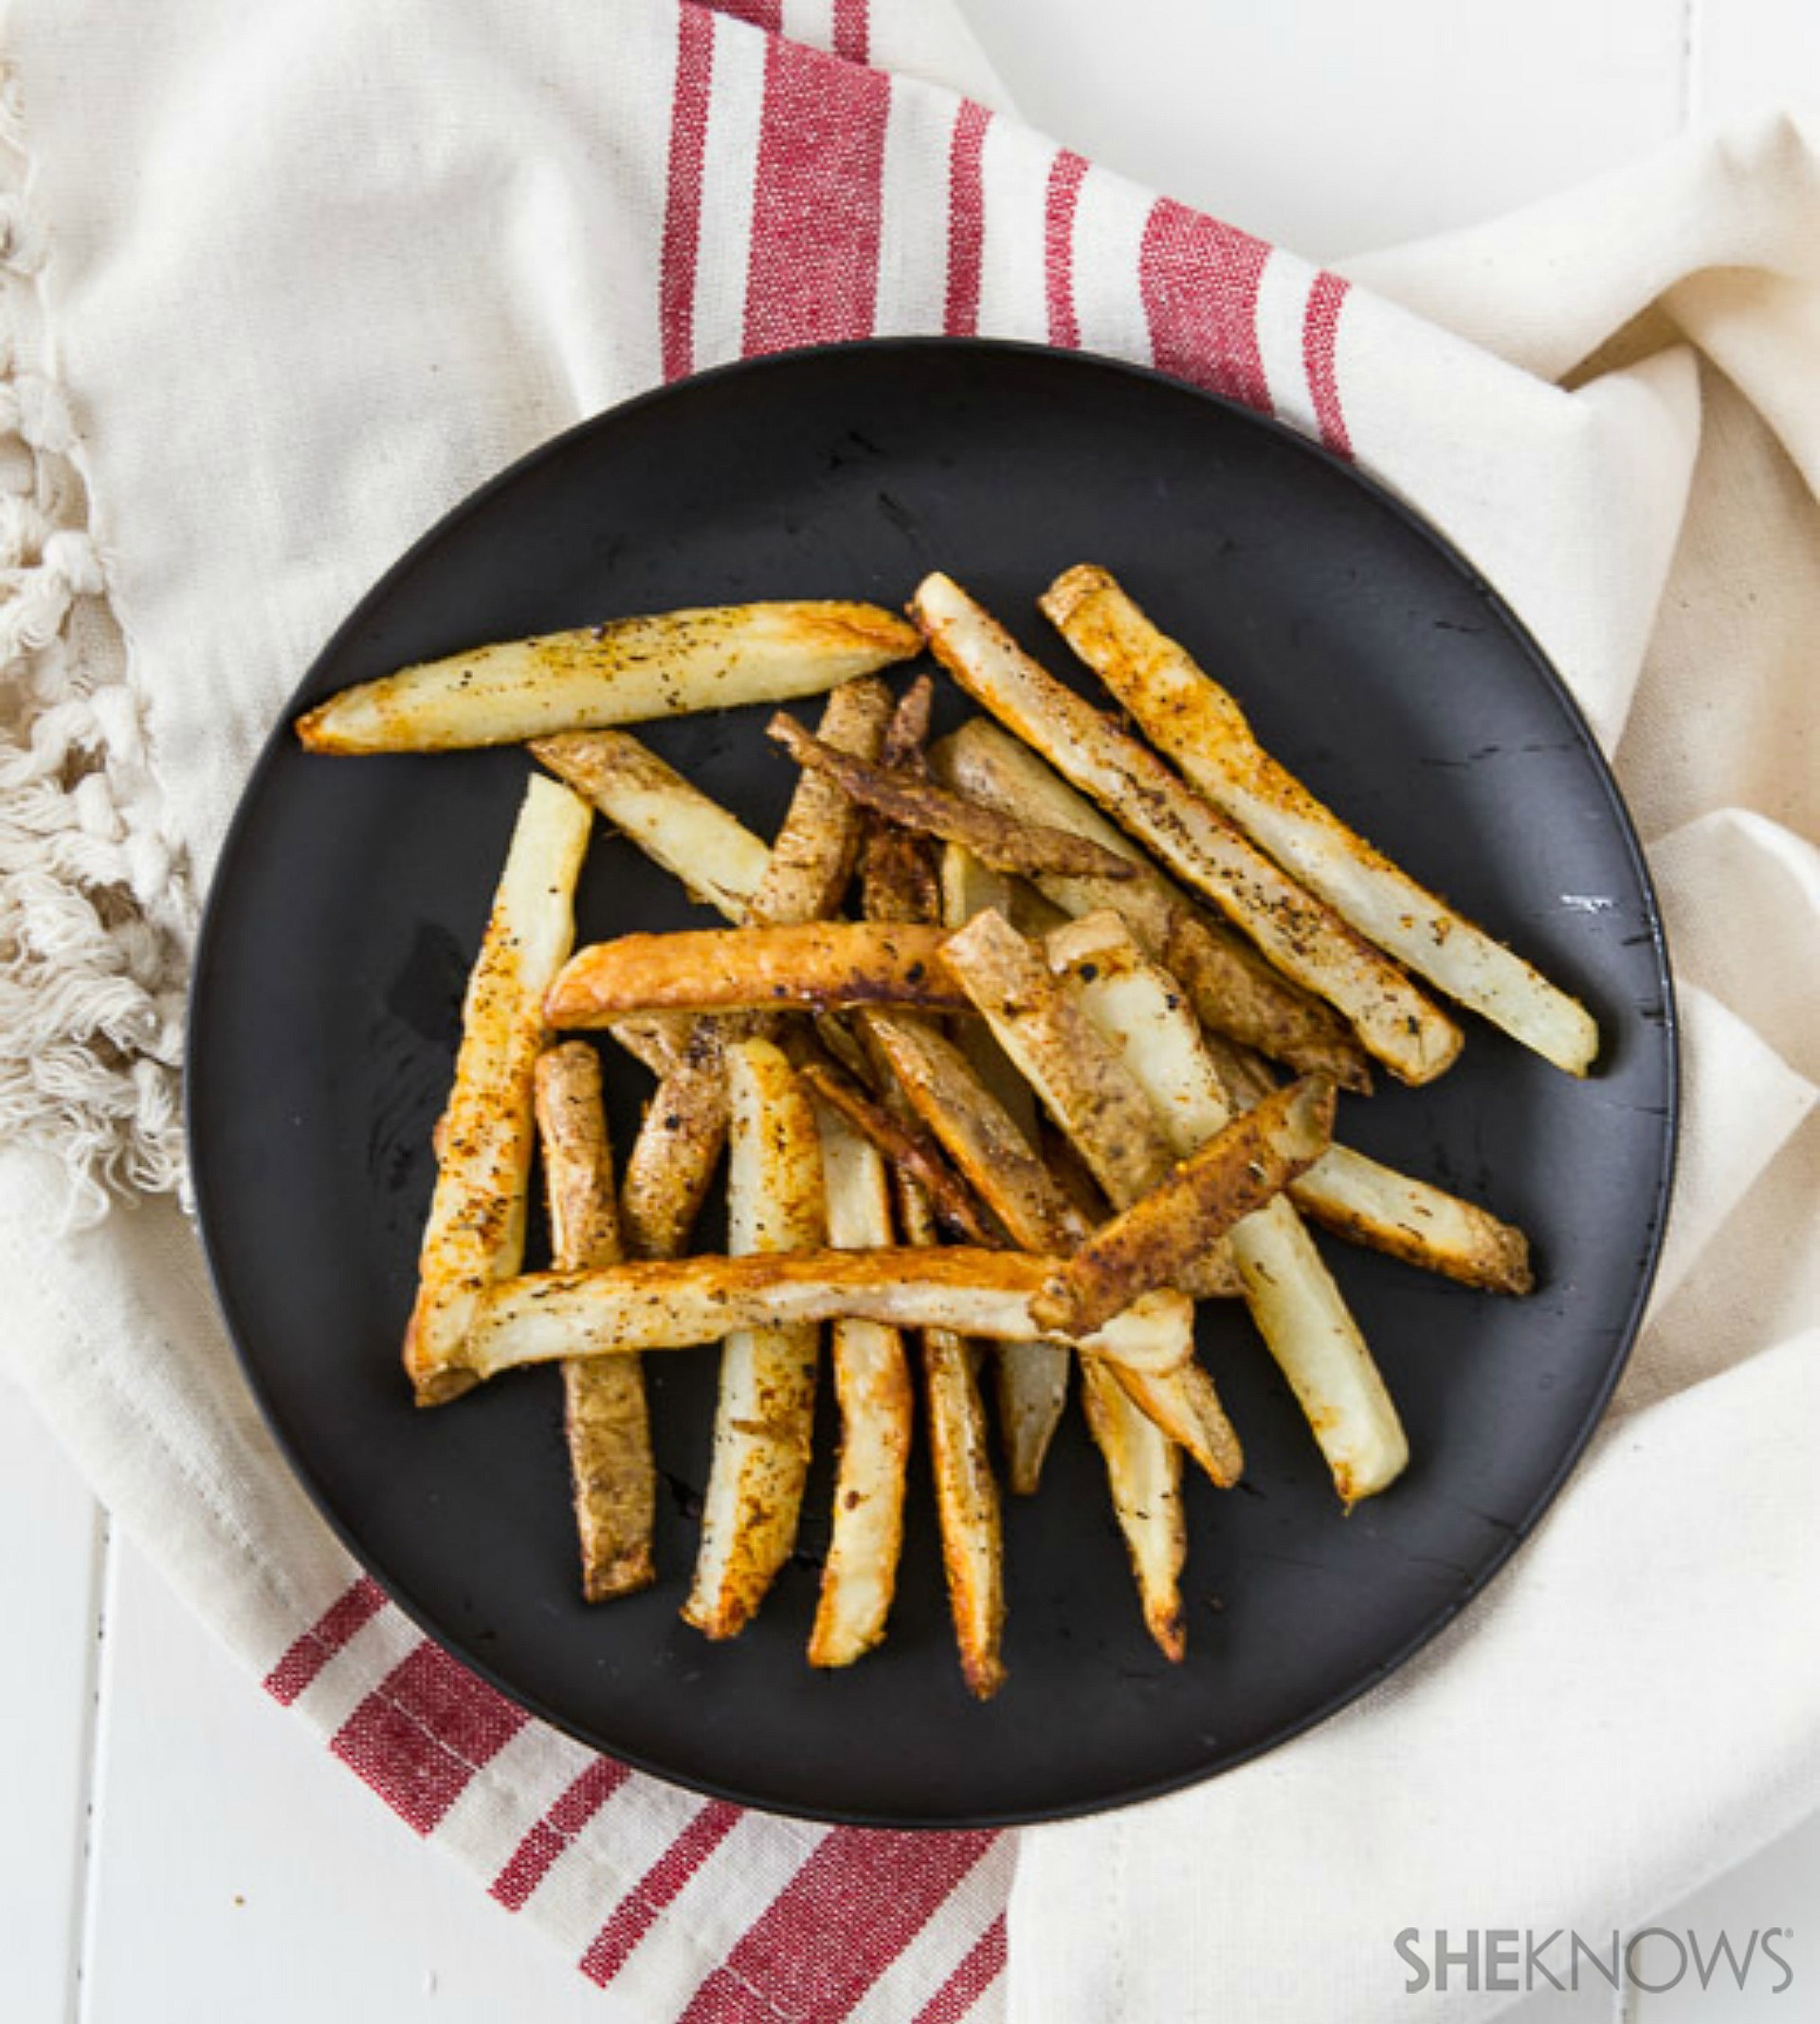 ... french crispy oven baked bojangles baked french fries with indian